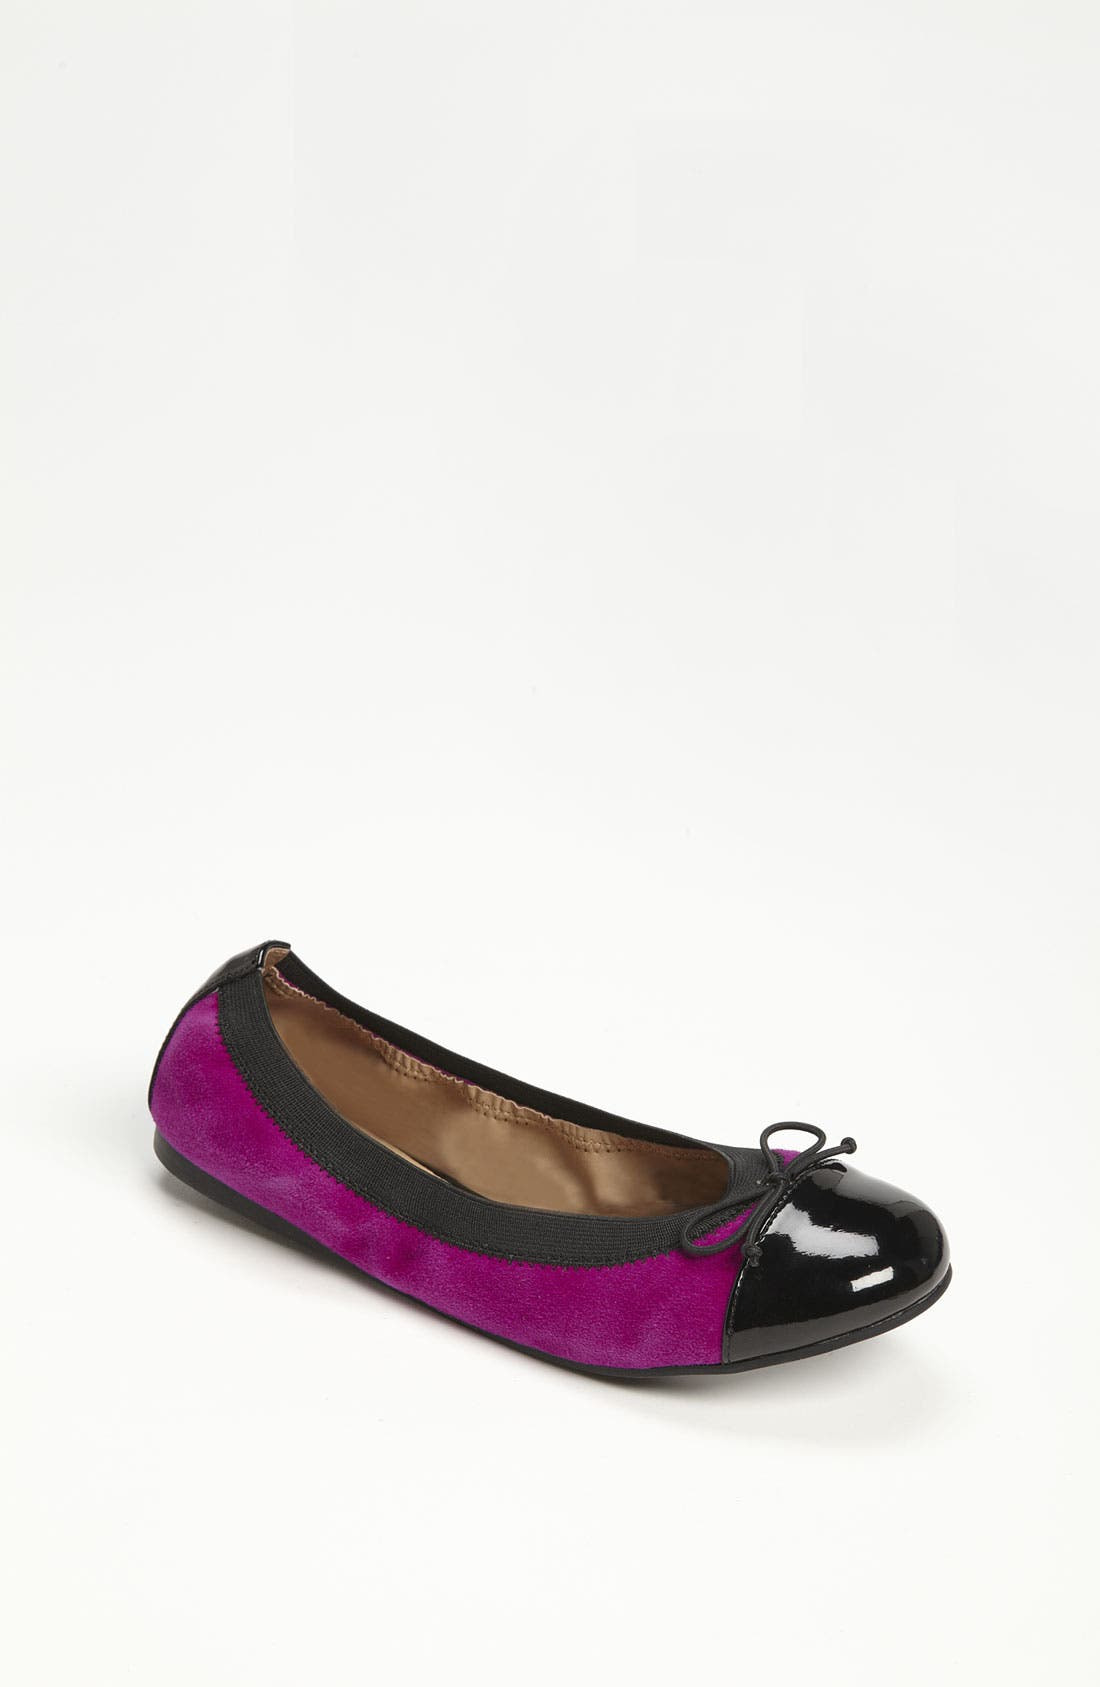 Alternate Image 1 Selected - BP. 'Mindy' Ballet Flat